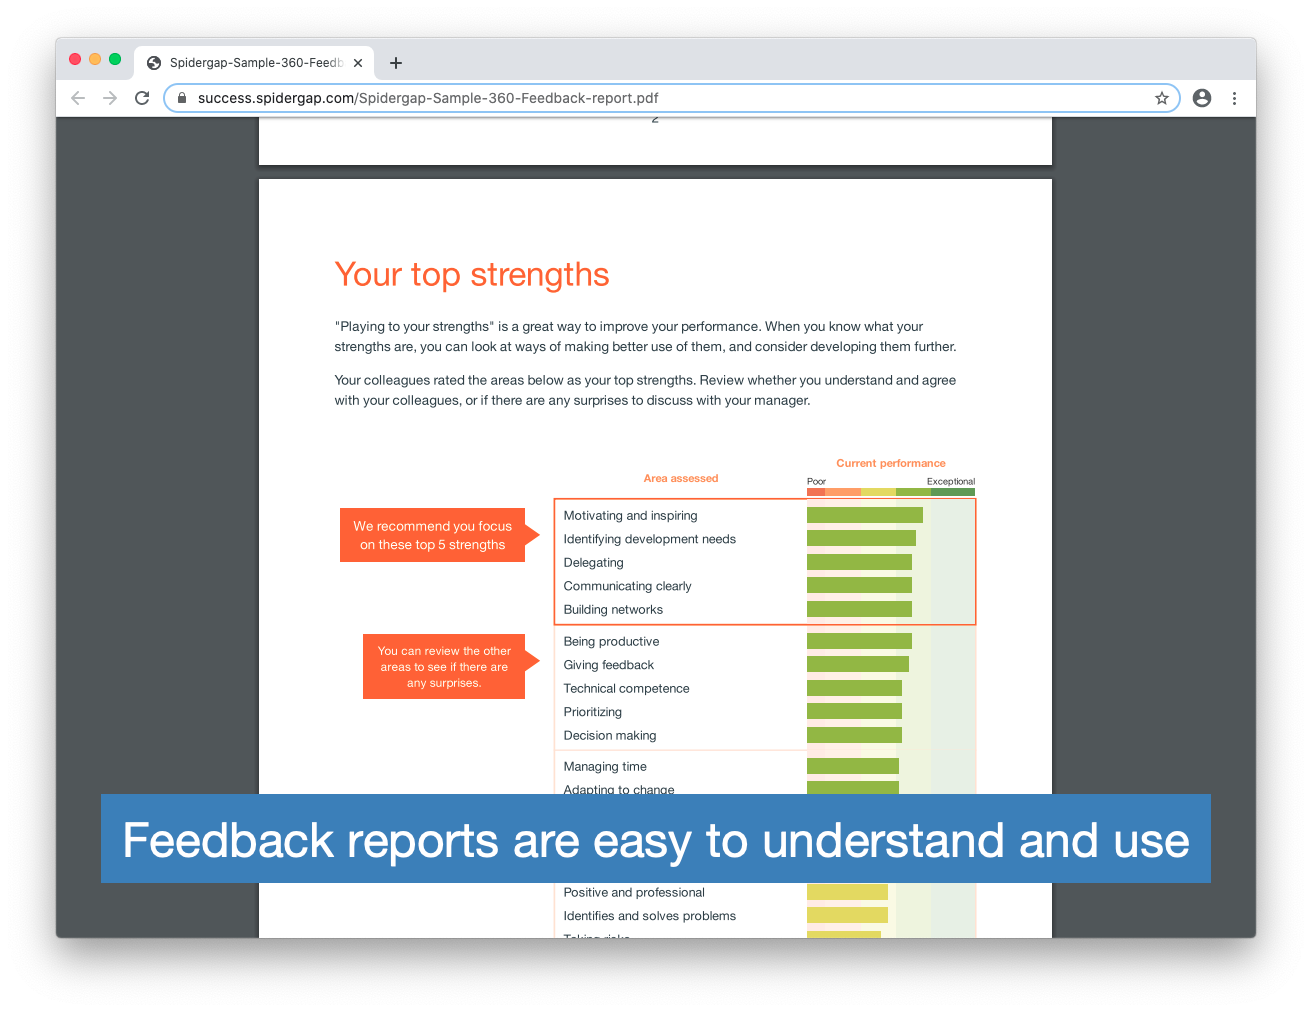 Spidergap Software - Feedback reports are easy to understand and use